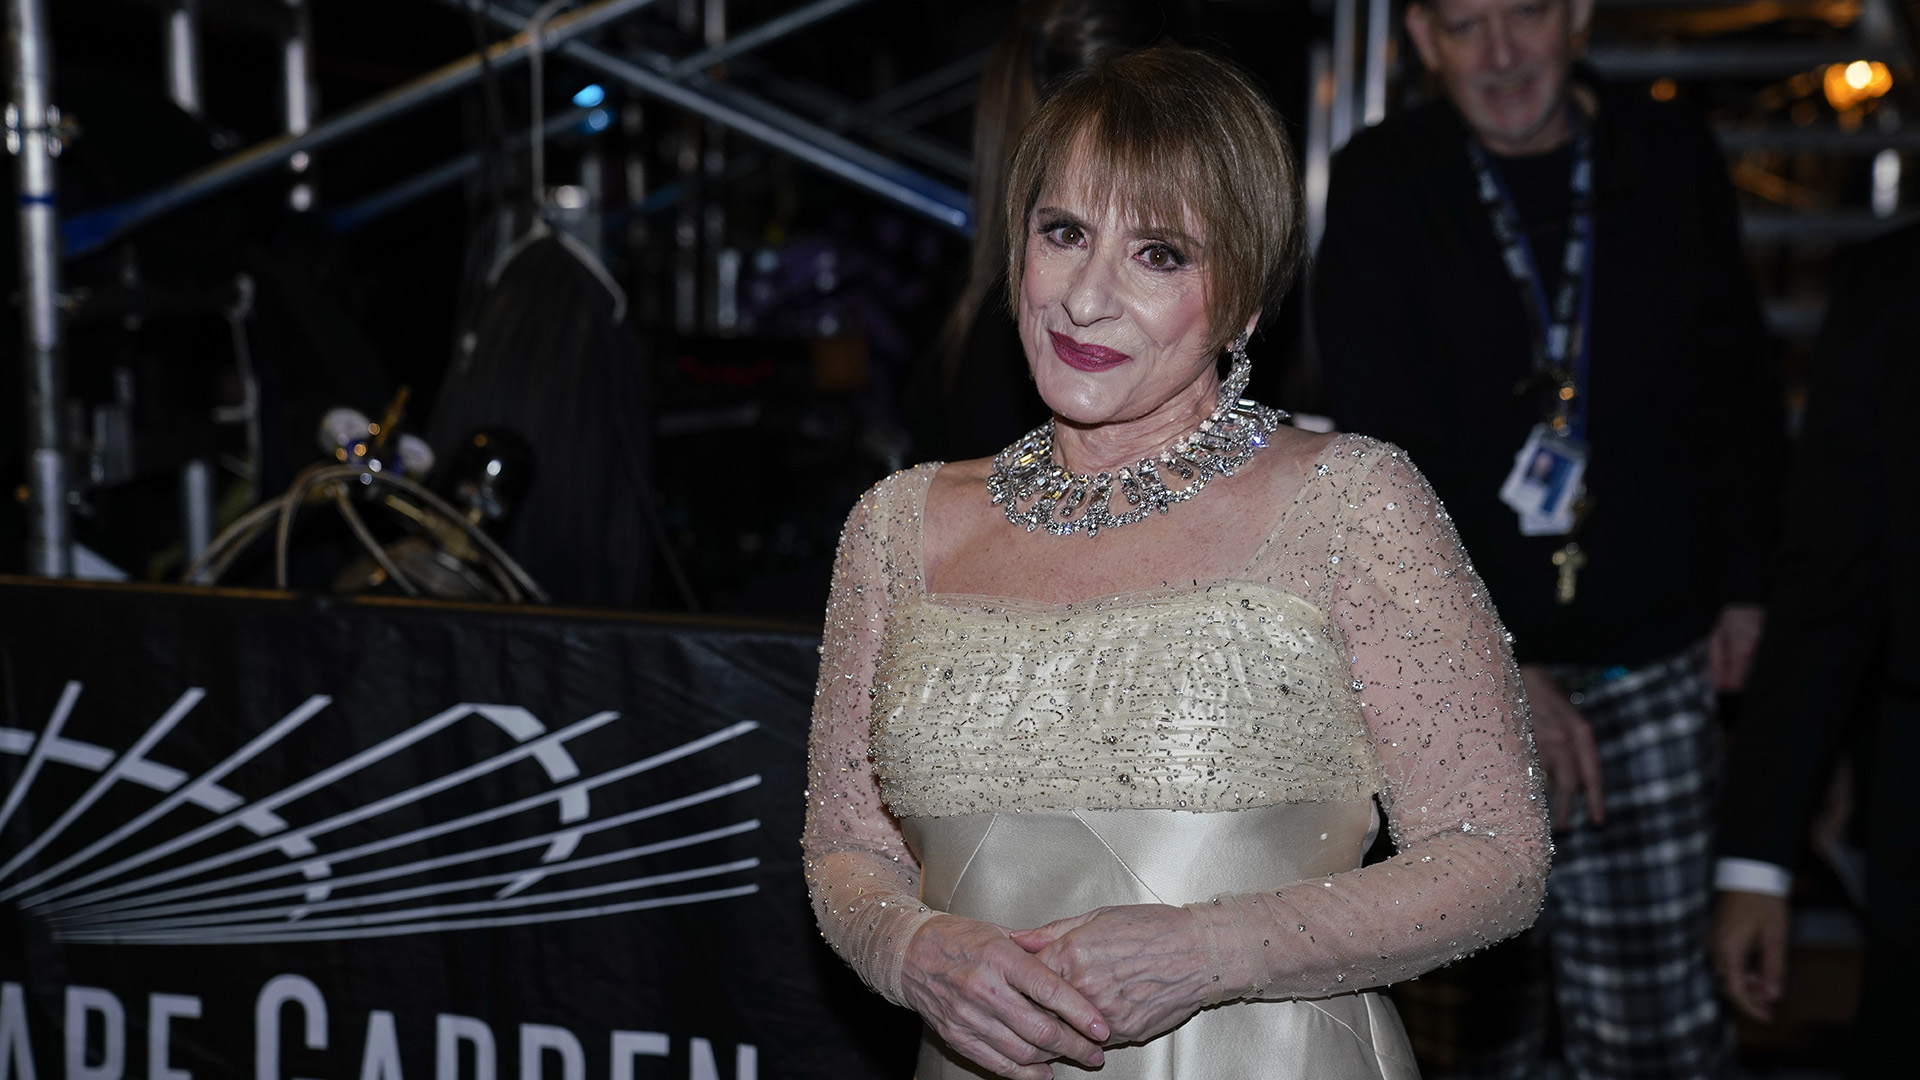 """Patti LuPone, who paid tribute to iconic Broadway composer Sir Andrew Lloyd Webber with a performance of """"Don't Cry For Me Argentina,"""